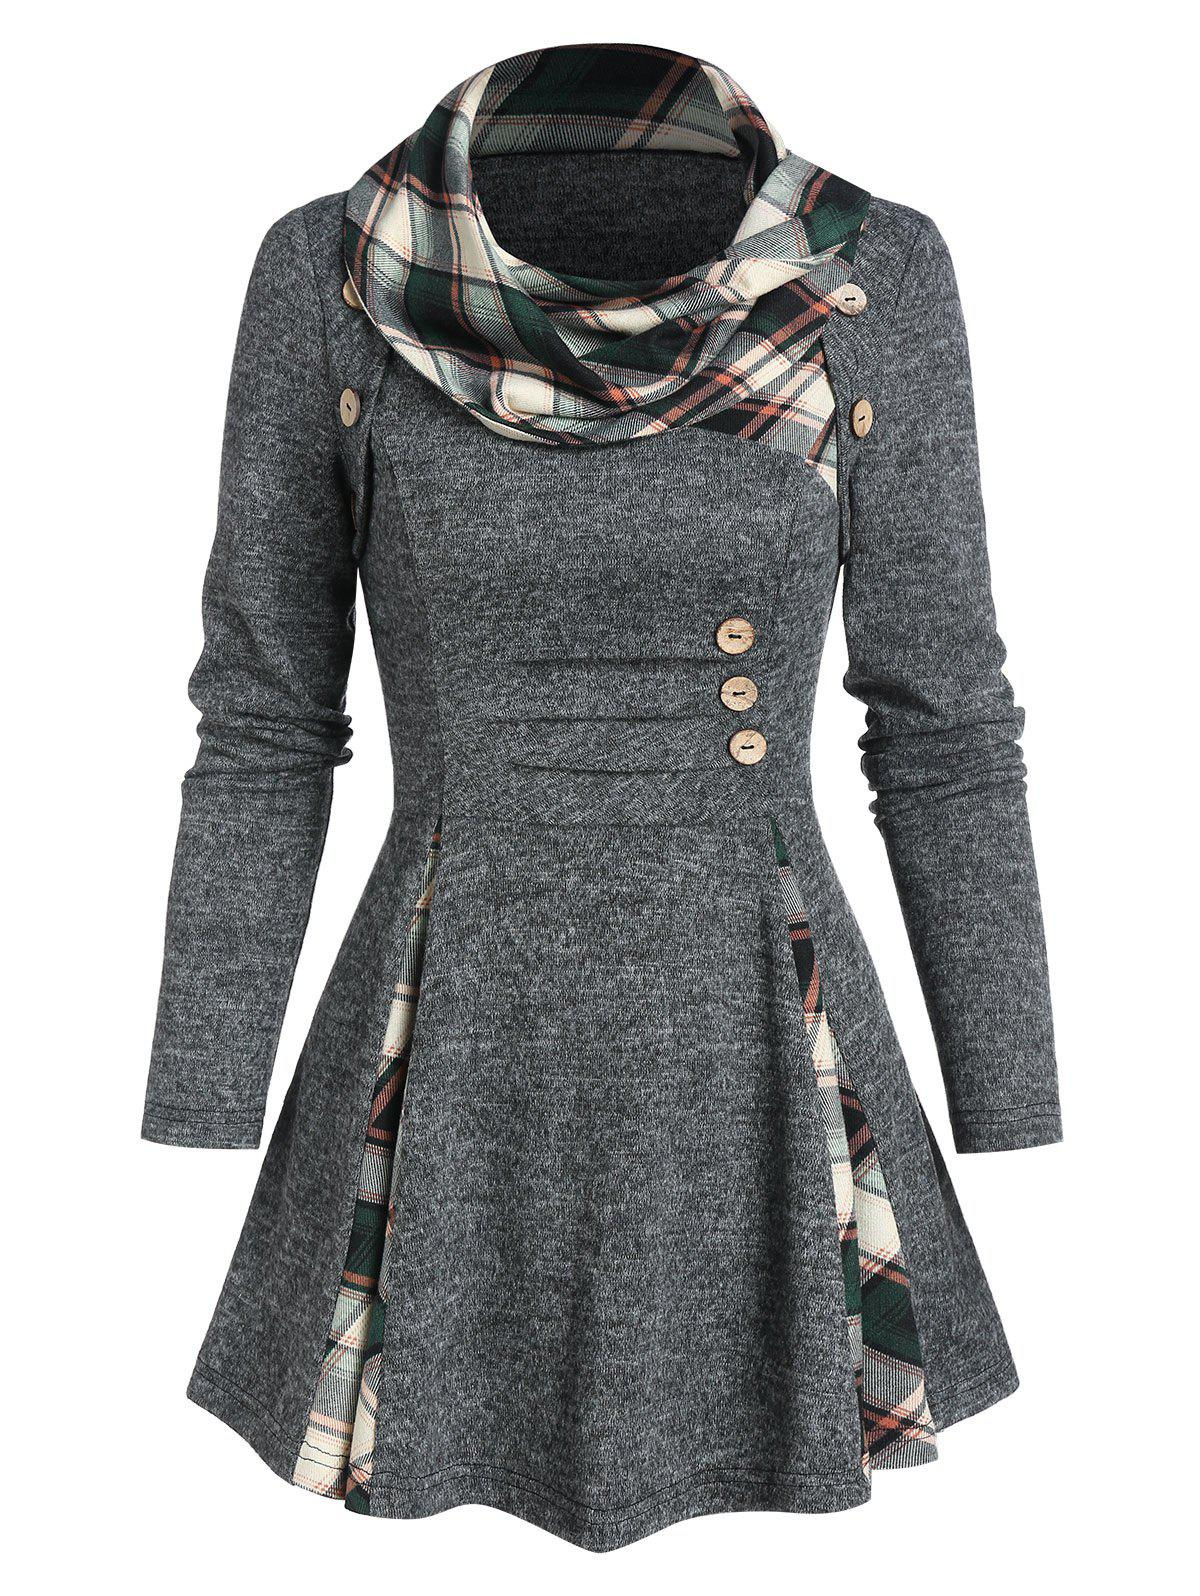 Plaid Print Ruched Mock Button Flare Sweater - CARBON GRAY 3XL